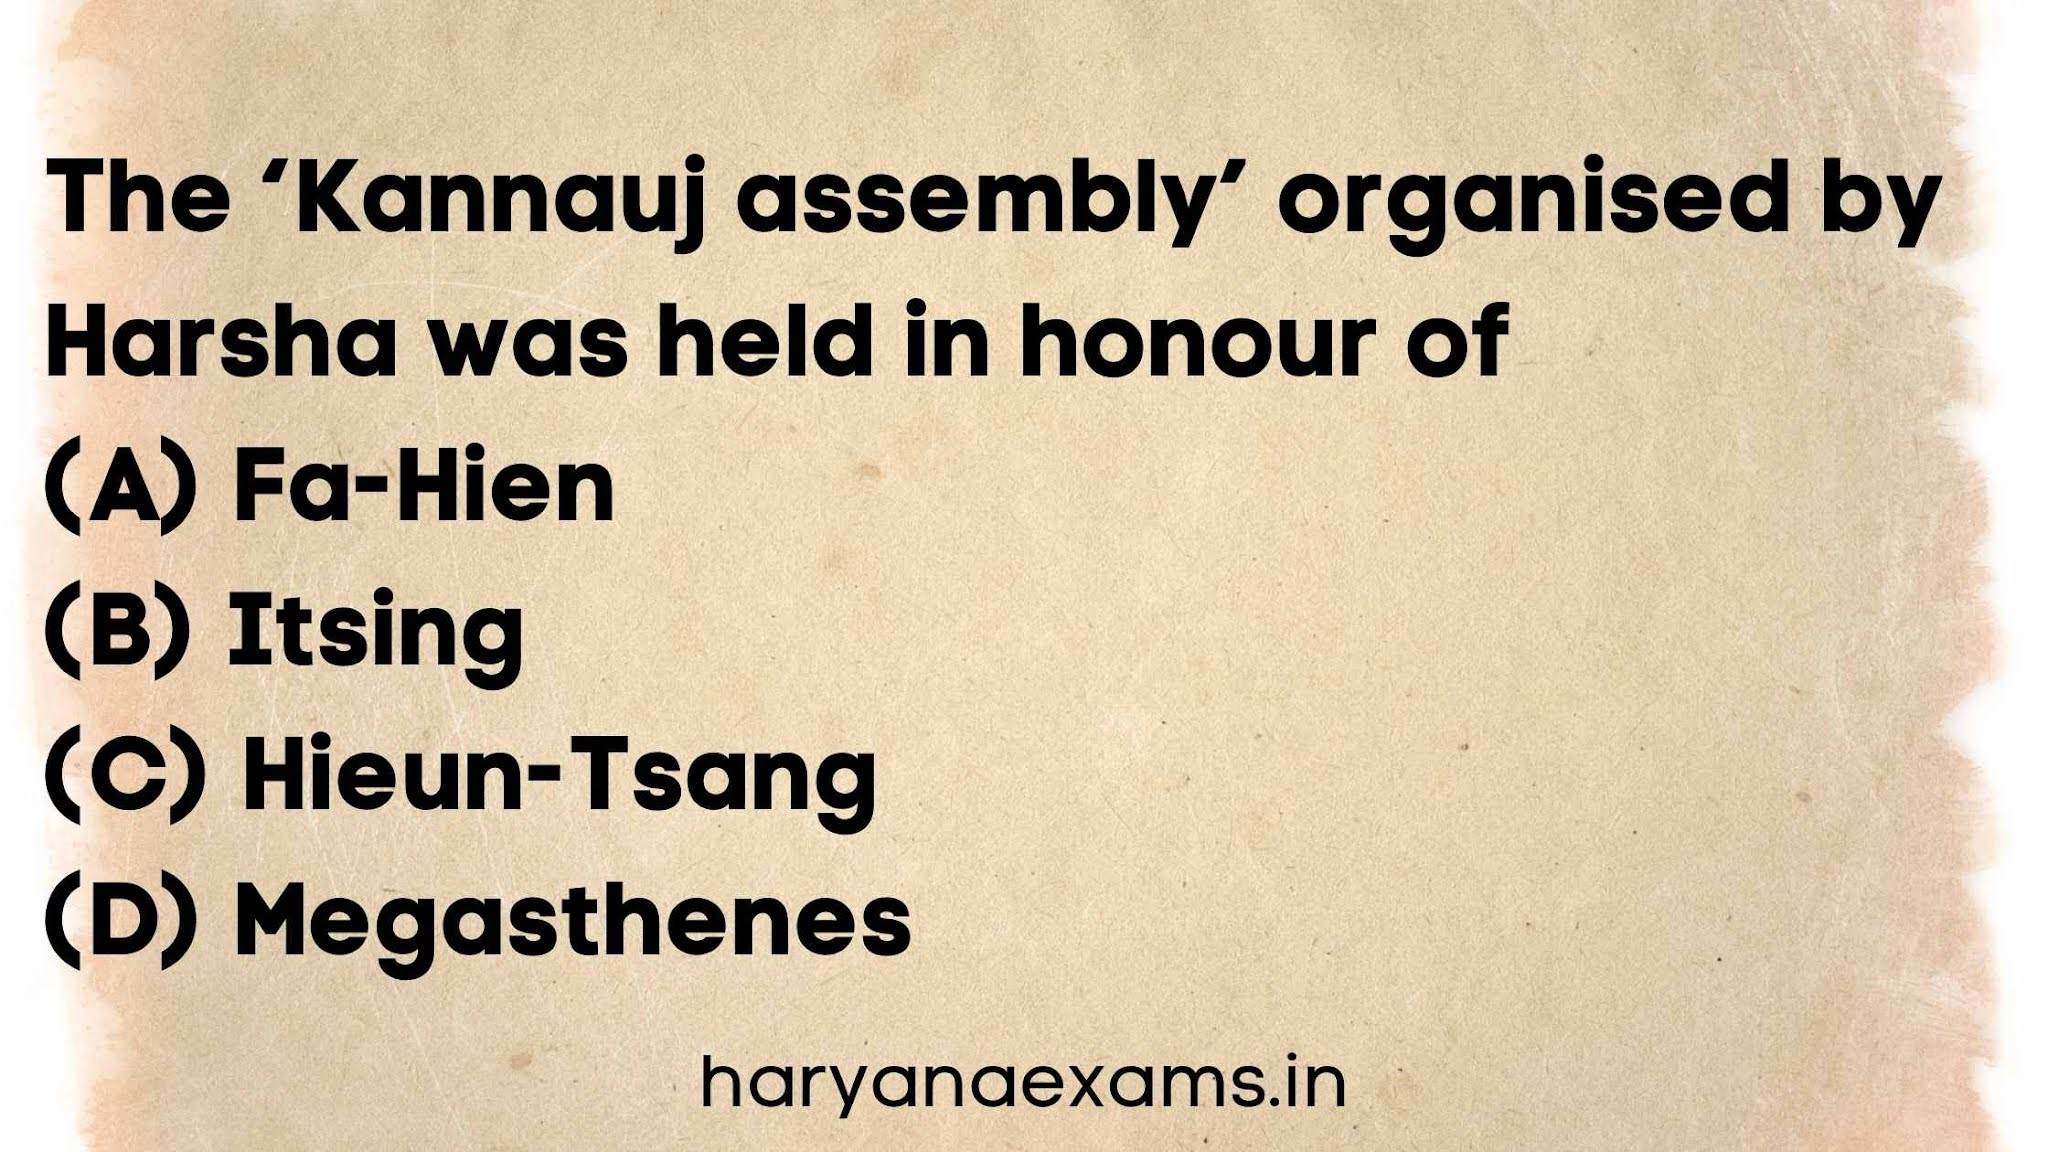 The 'Kannauj assembly' organised by Harsha was held in honour of   (A) Fa-Hien   (B) Itsing   (C) Hieun-Tsang   (D) Megasthenes